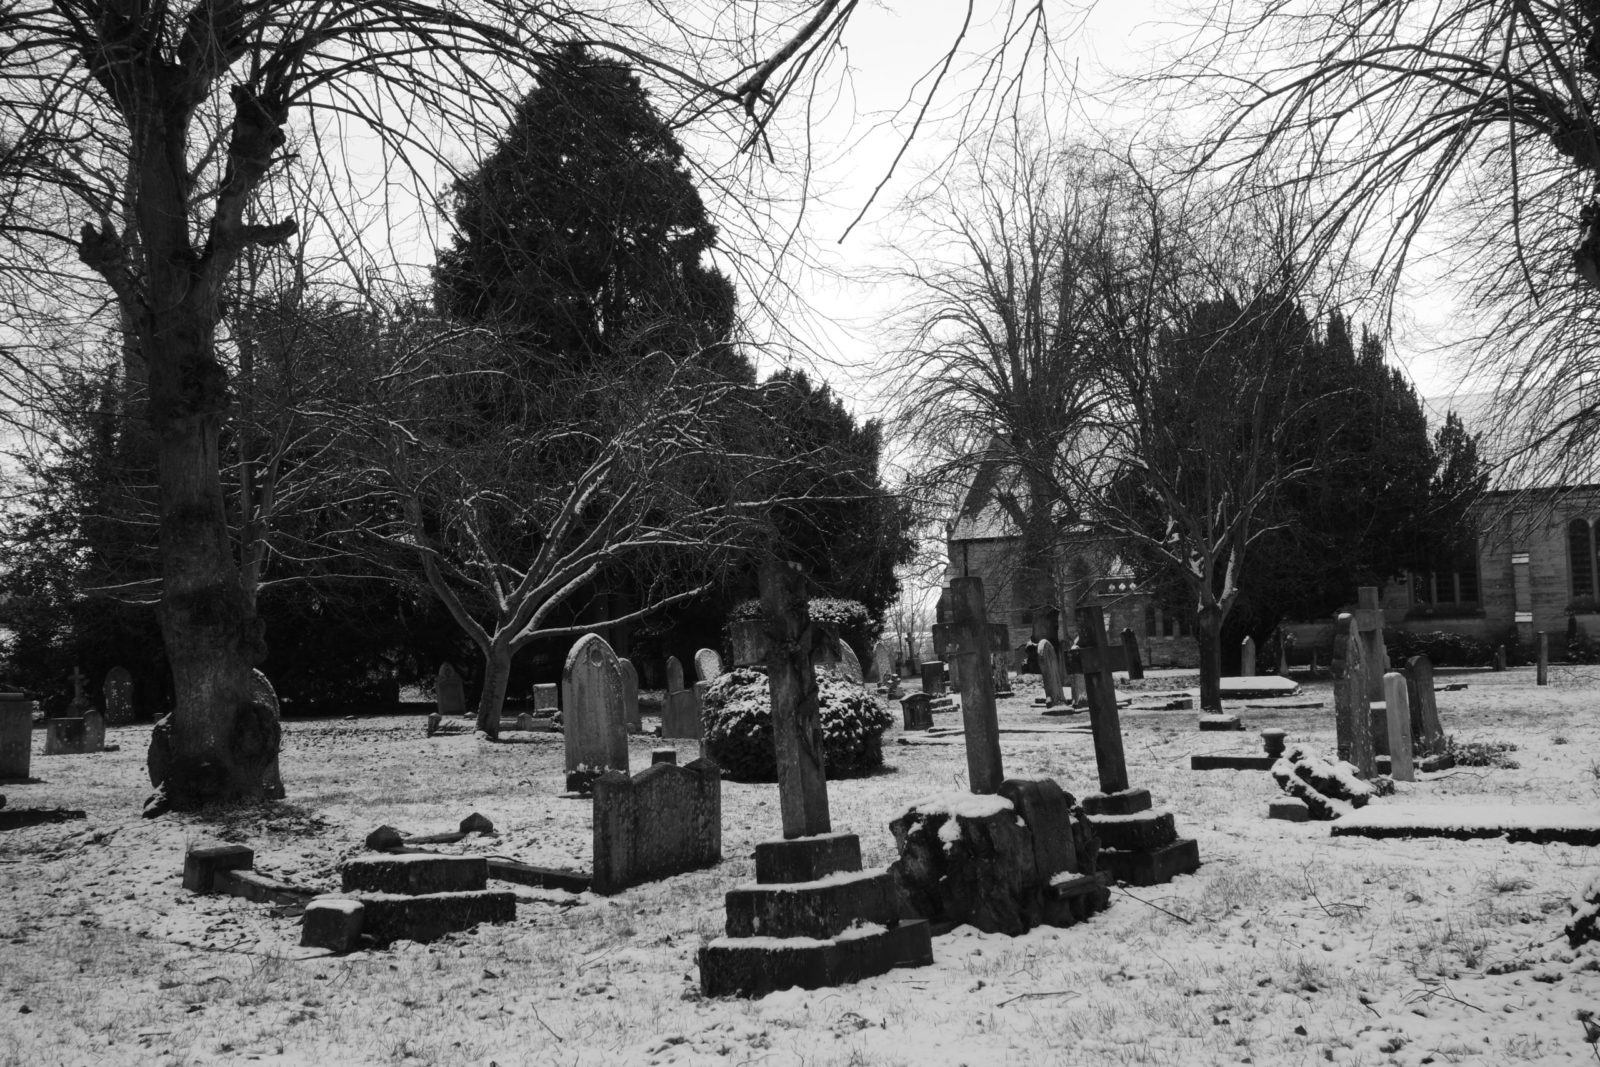 Frozen Graves in Warwickshire, England